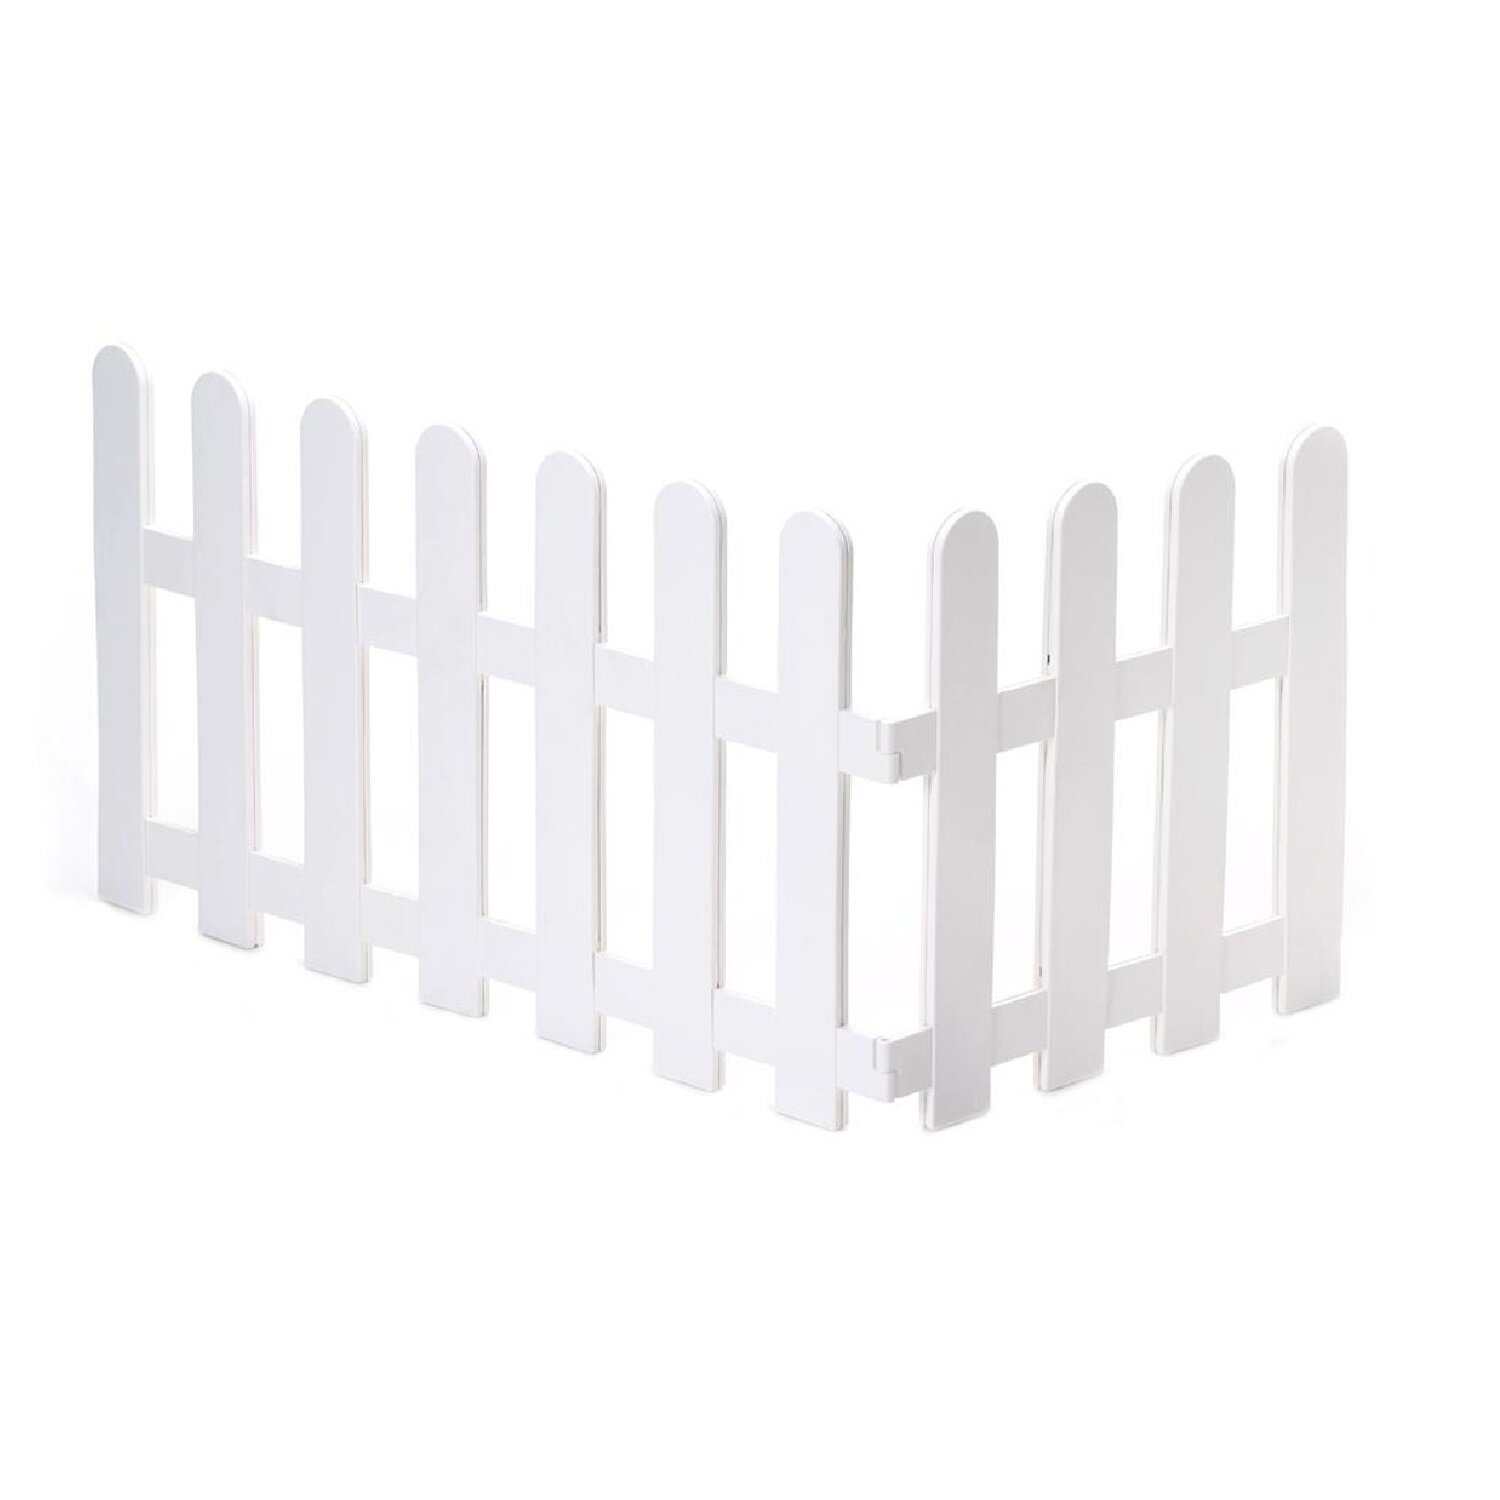 Worth Garden 1 Ft H X 4 Ft W White Sectional Composite Fence Panel